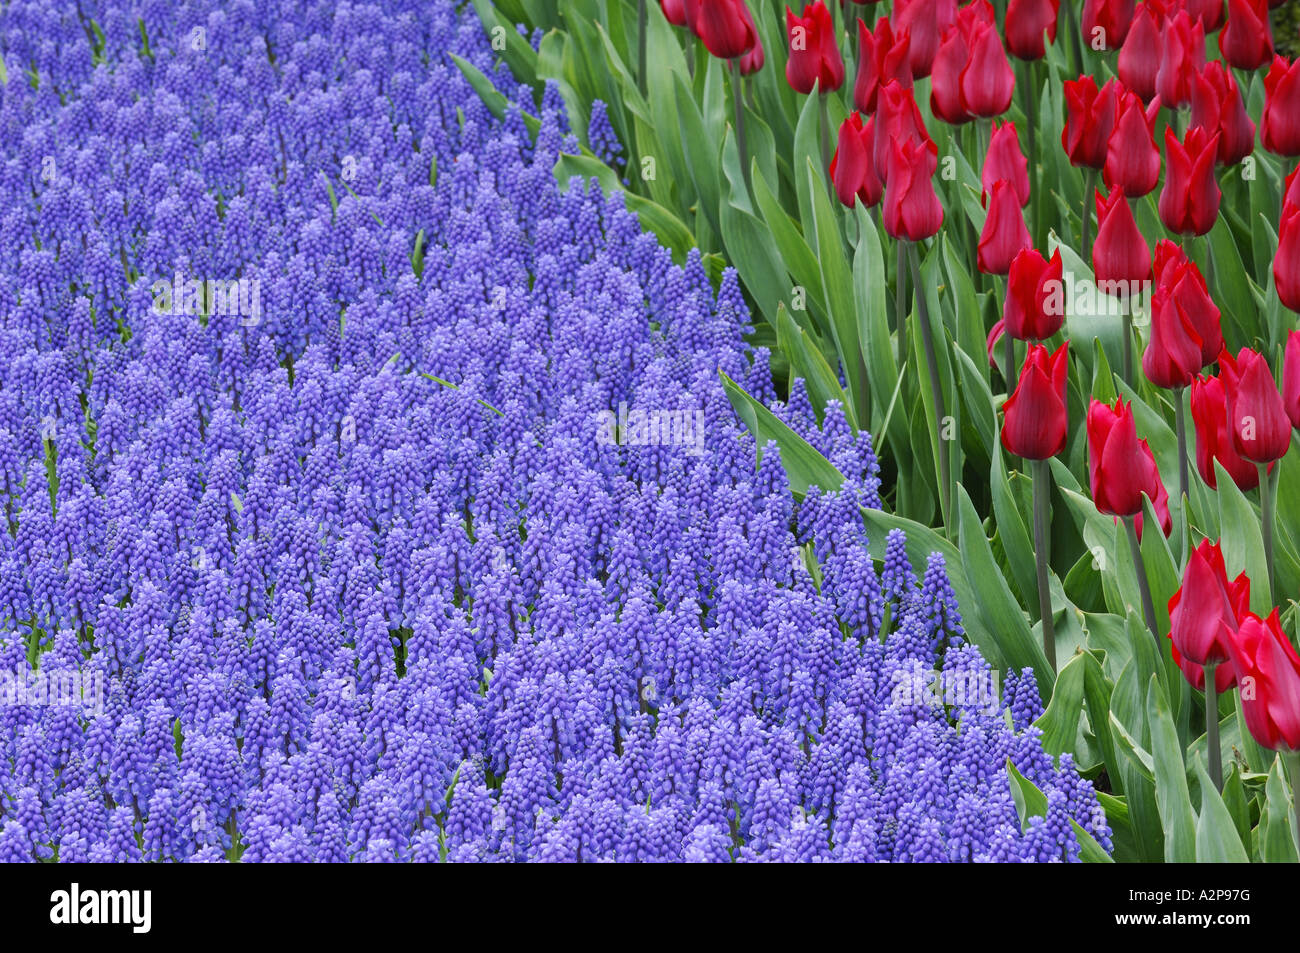 common garden tulip (Tulipa gesneriana), flowerbed with tulips and grape hyacinths, Muscari botryoides Stock Photo